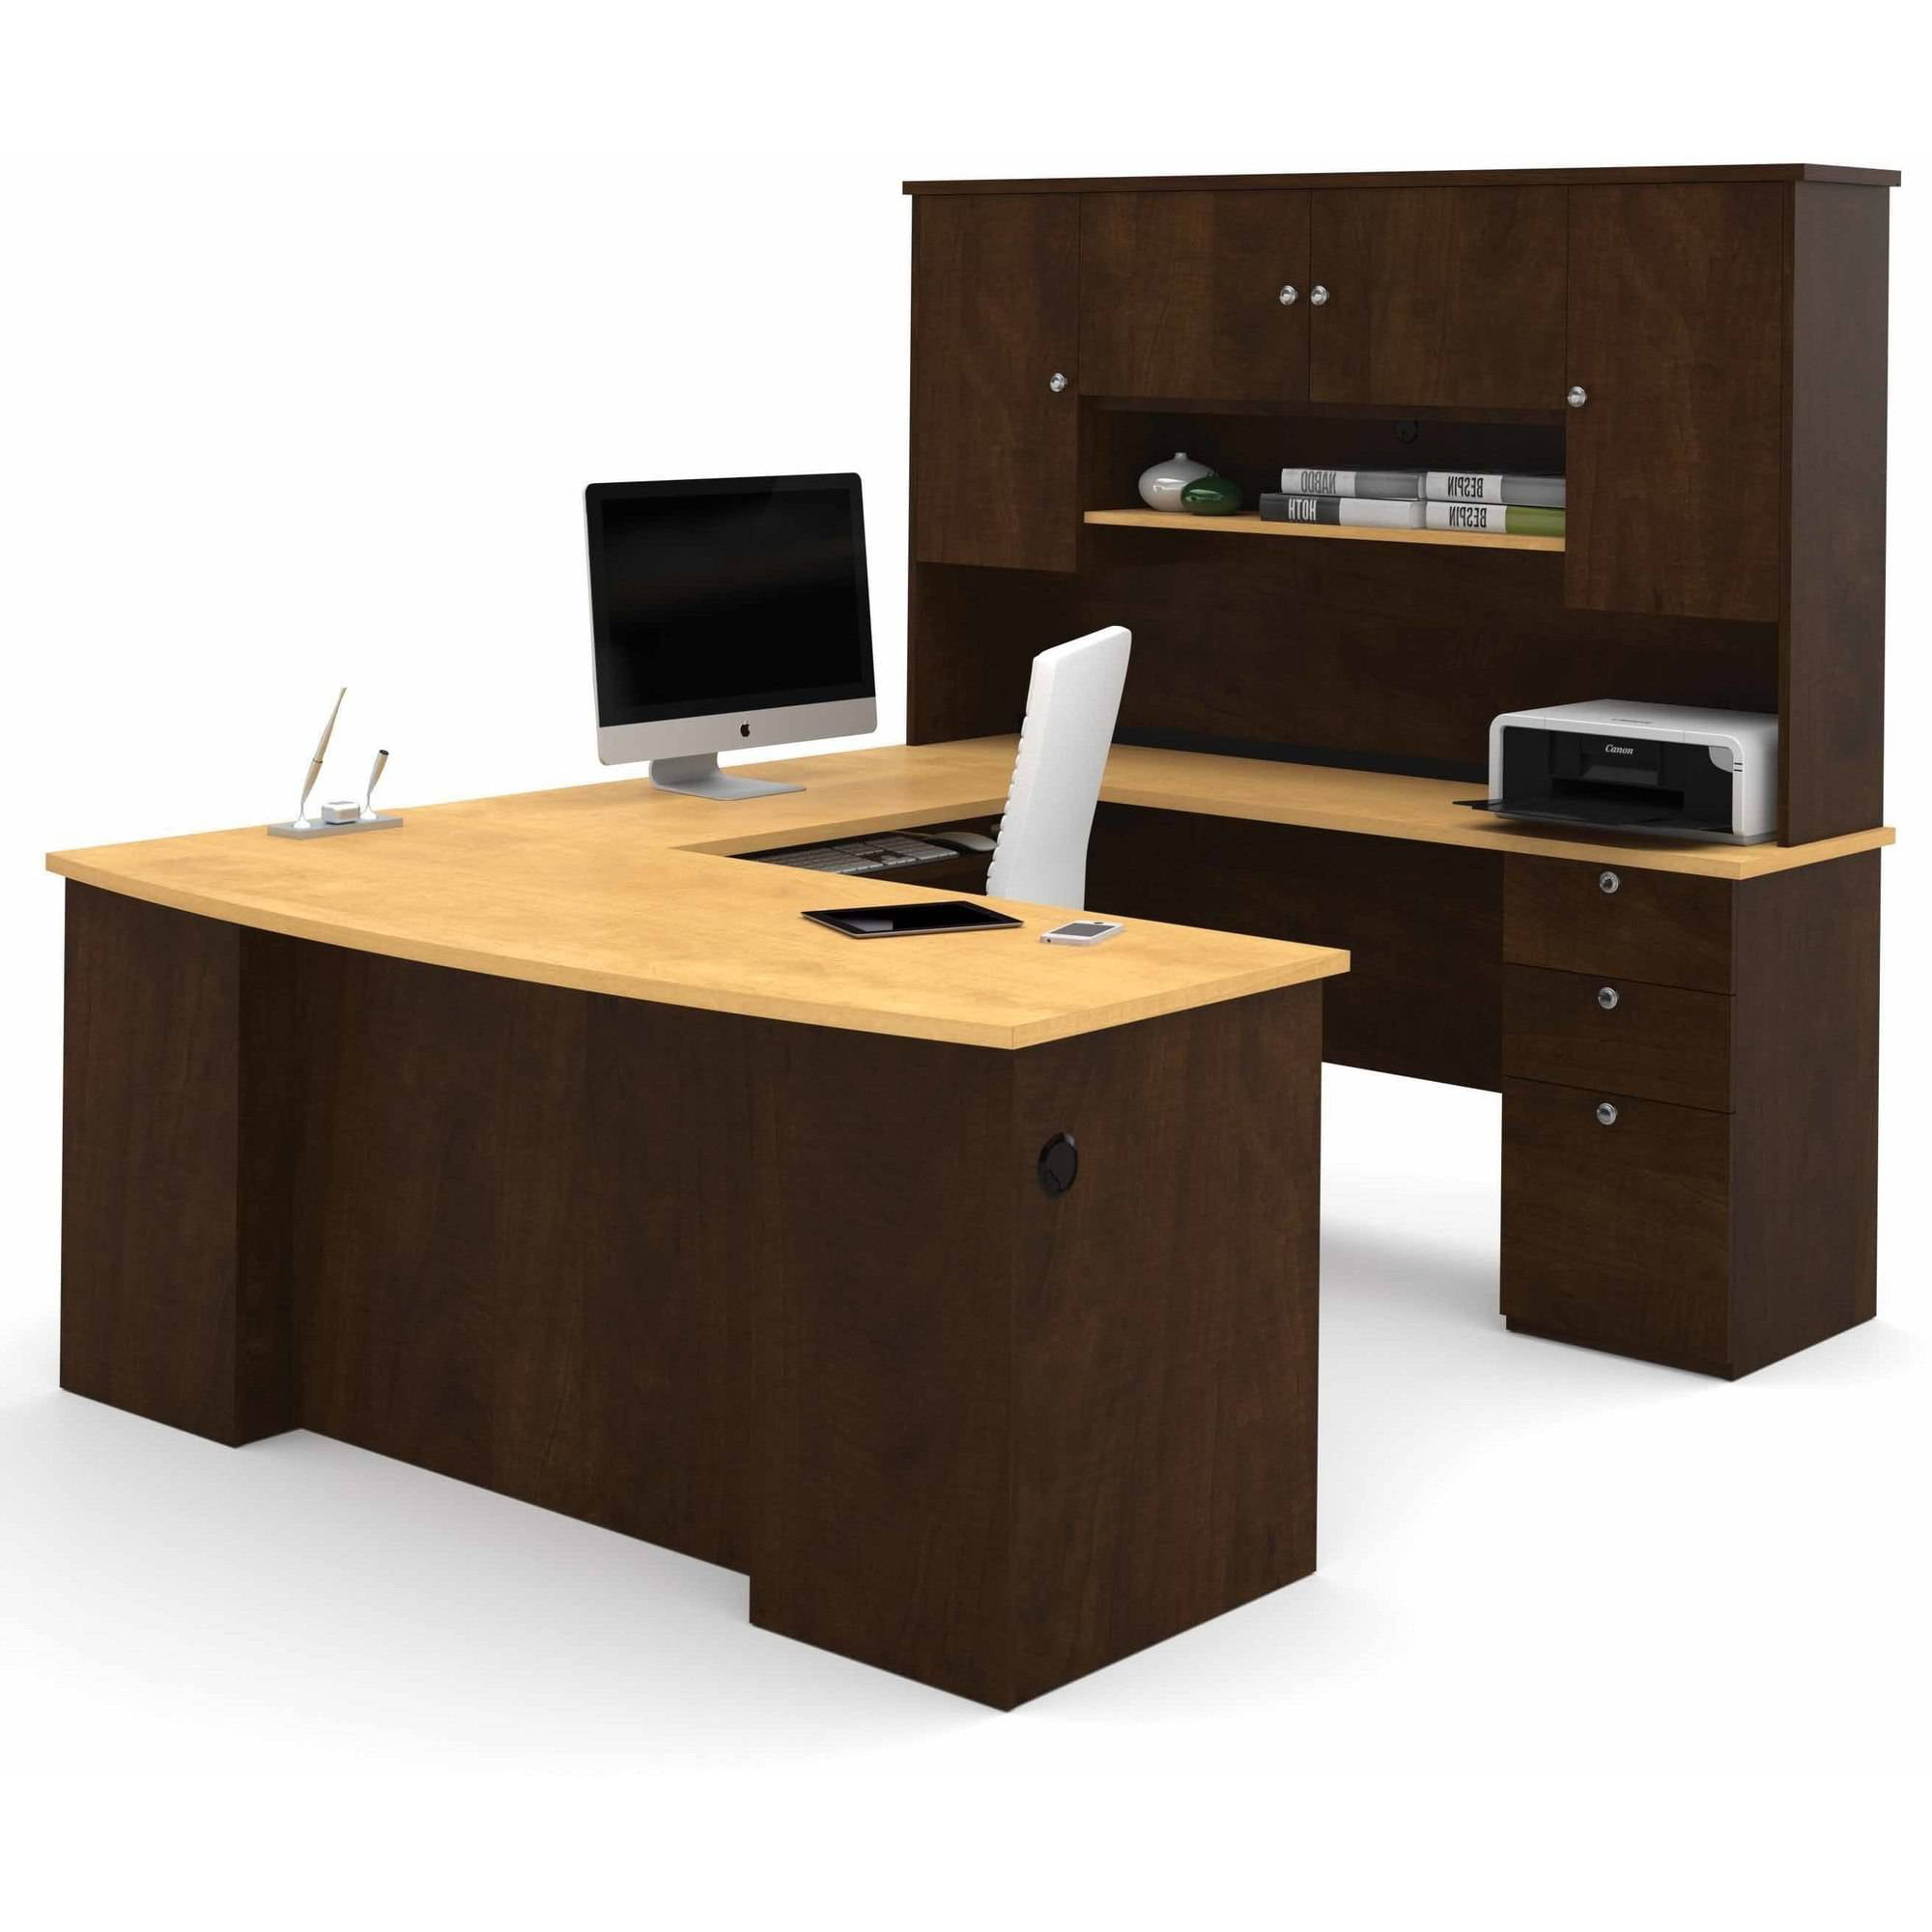 pics of office furniture. Desks \u0026 Workstations Pics Of Office Furniture F